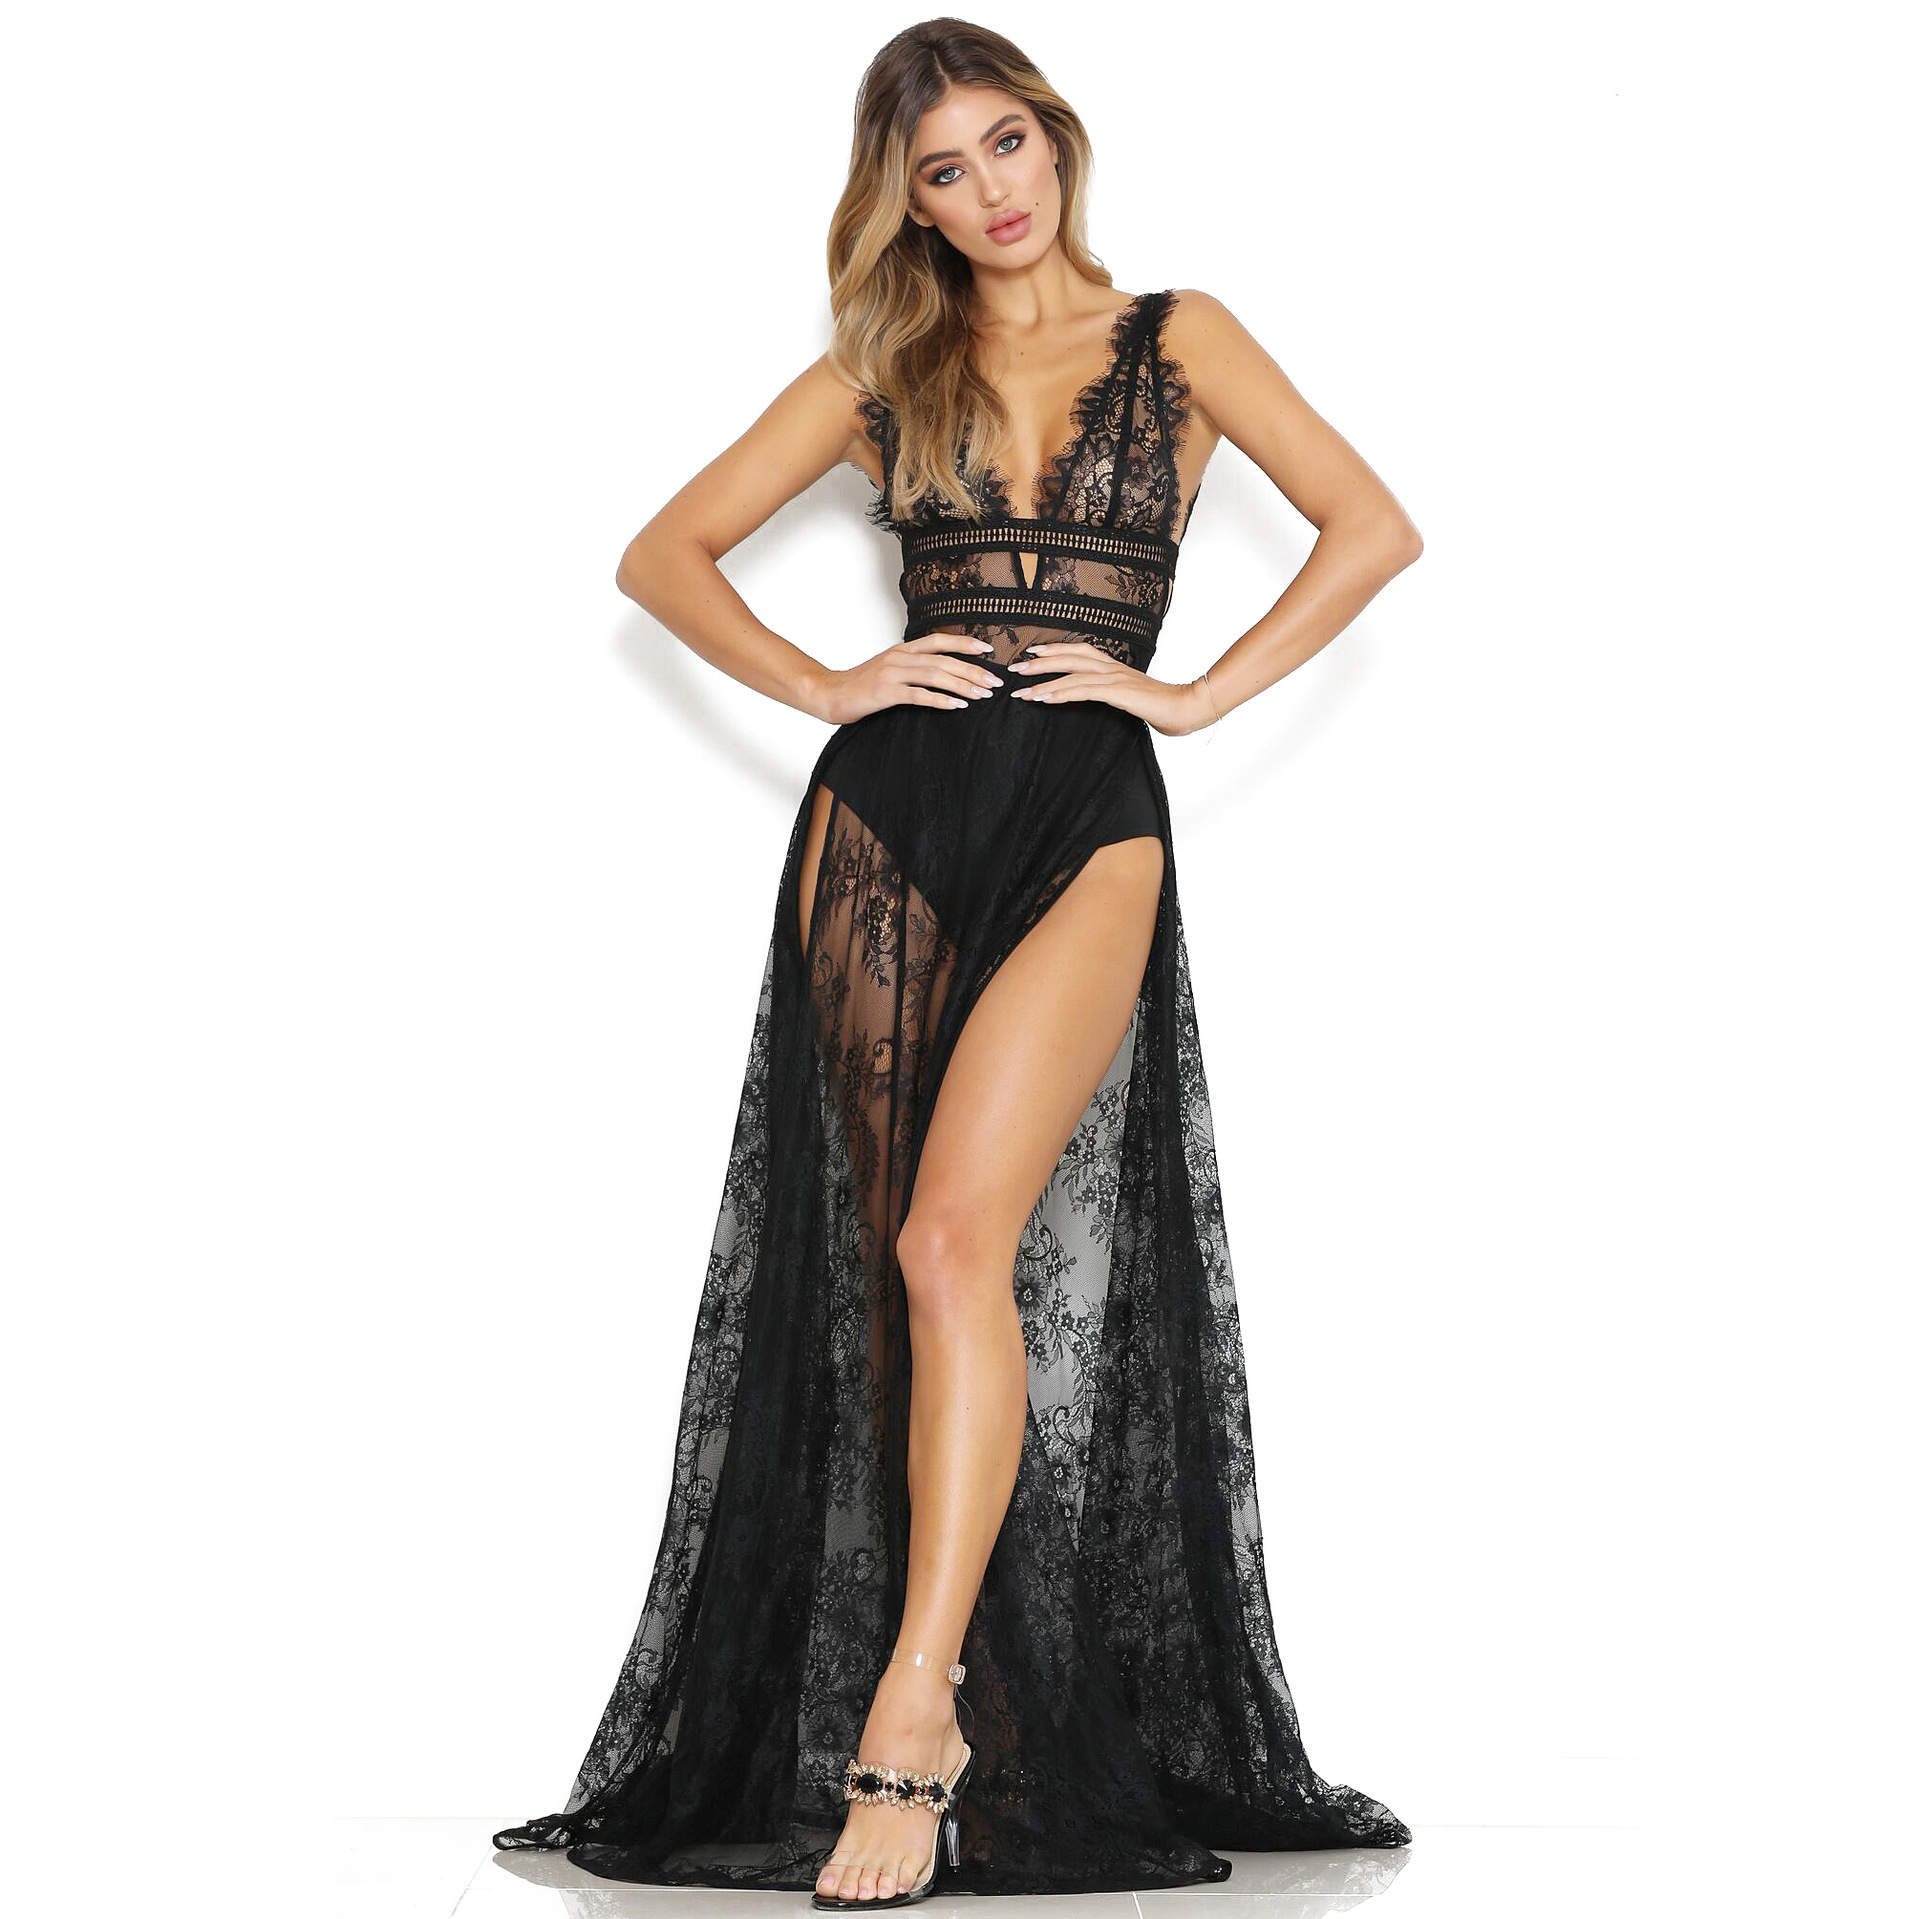 2019 summer European and American style lace dress sexy perspective lace high slit deep V-neck nightclub dress